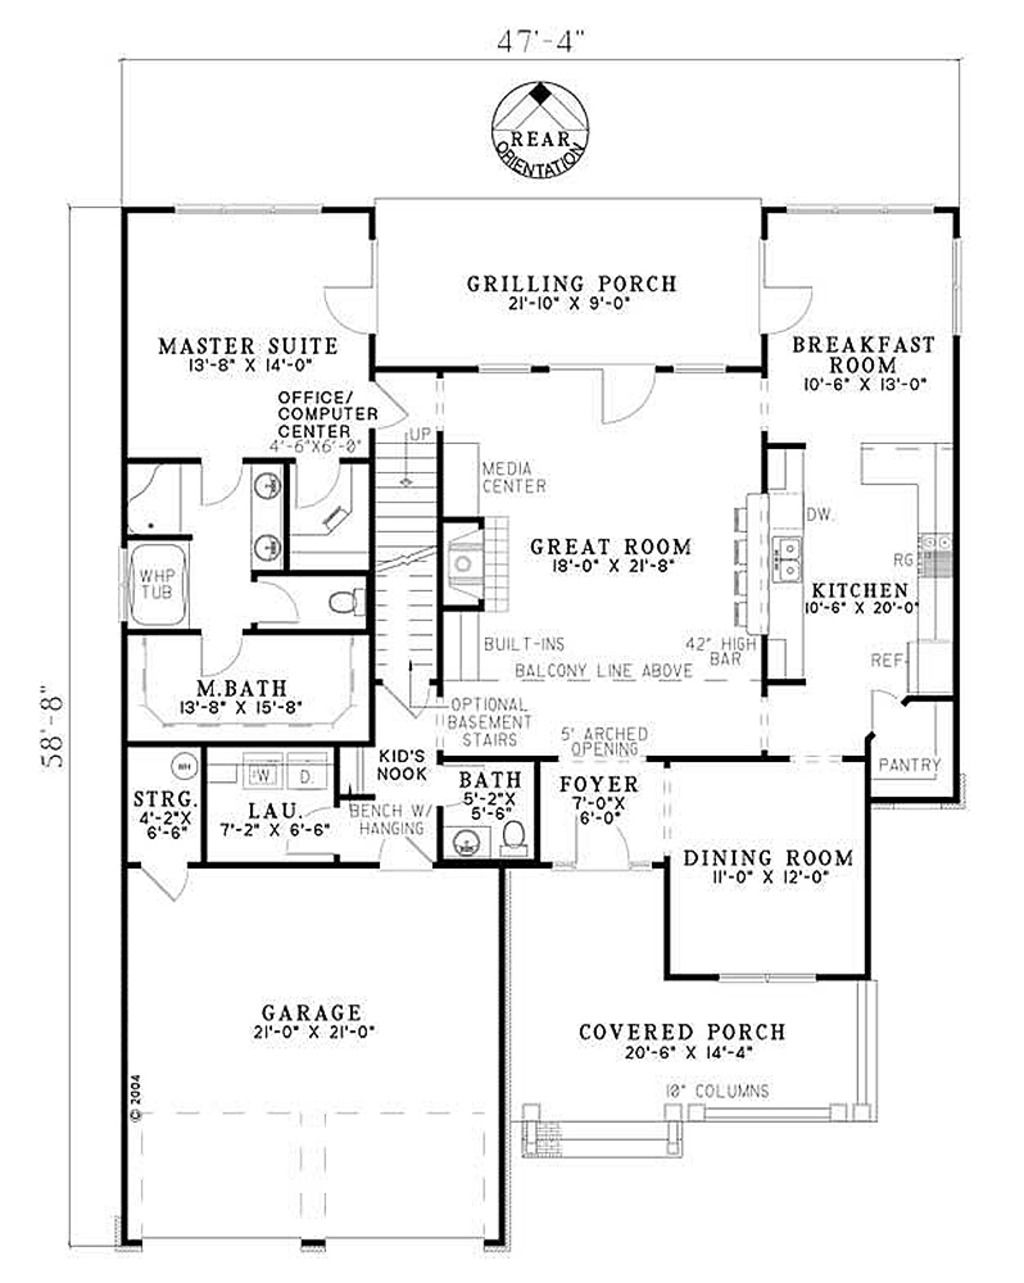 Craftsman Style House Plan - 4 Beds 3.00 Baths 2470 Sq/Ft ... on 3500 sq ft house plans, 2250 sq ft house plans, 3000 sq ft house plans, 100000 sq ft house plans, 1421 sq ft house plans, 10000 sq ft house plans, 15000 sq ft house plans, 4800 sq ft house plans, 25000 sq ft house plans, 1500 sq ft house plans, 2000 sq ft house plans, 2800 sq ft house plans, 4000 sq ft house plans, 3200 sq ft house plans, 30000 sq ft house plans, 2300 sq ft house plans, 6500 sq ft house plans, 50000 sq ft house plans, 3100 sq ft house plans, 5250 sq ft house plans,